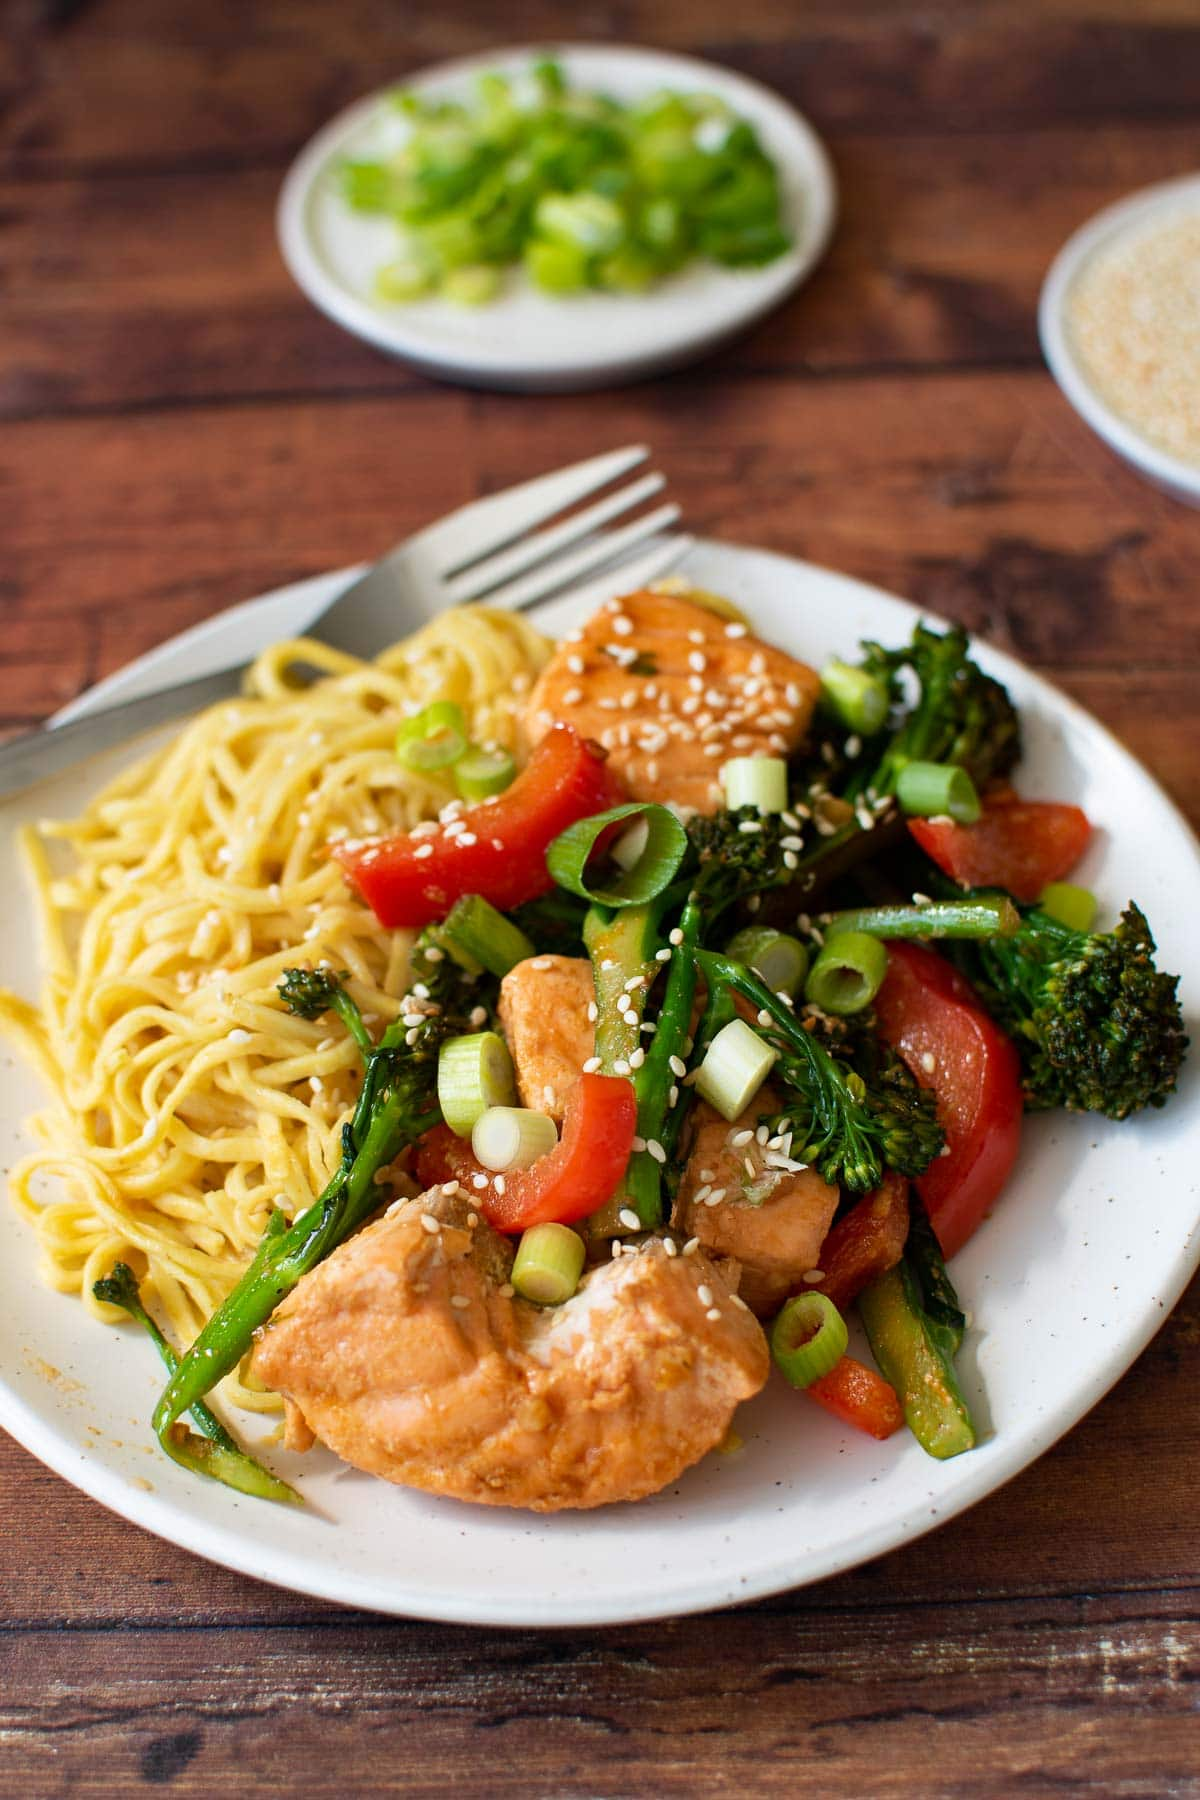 Stir fried salmon, broccolini and red bell pepper.